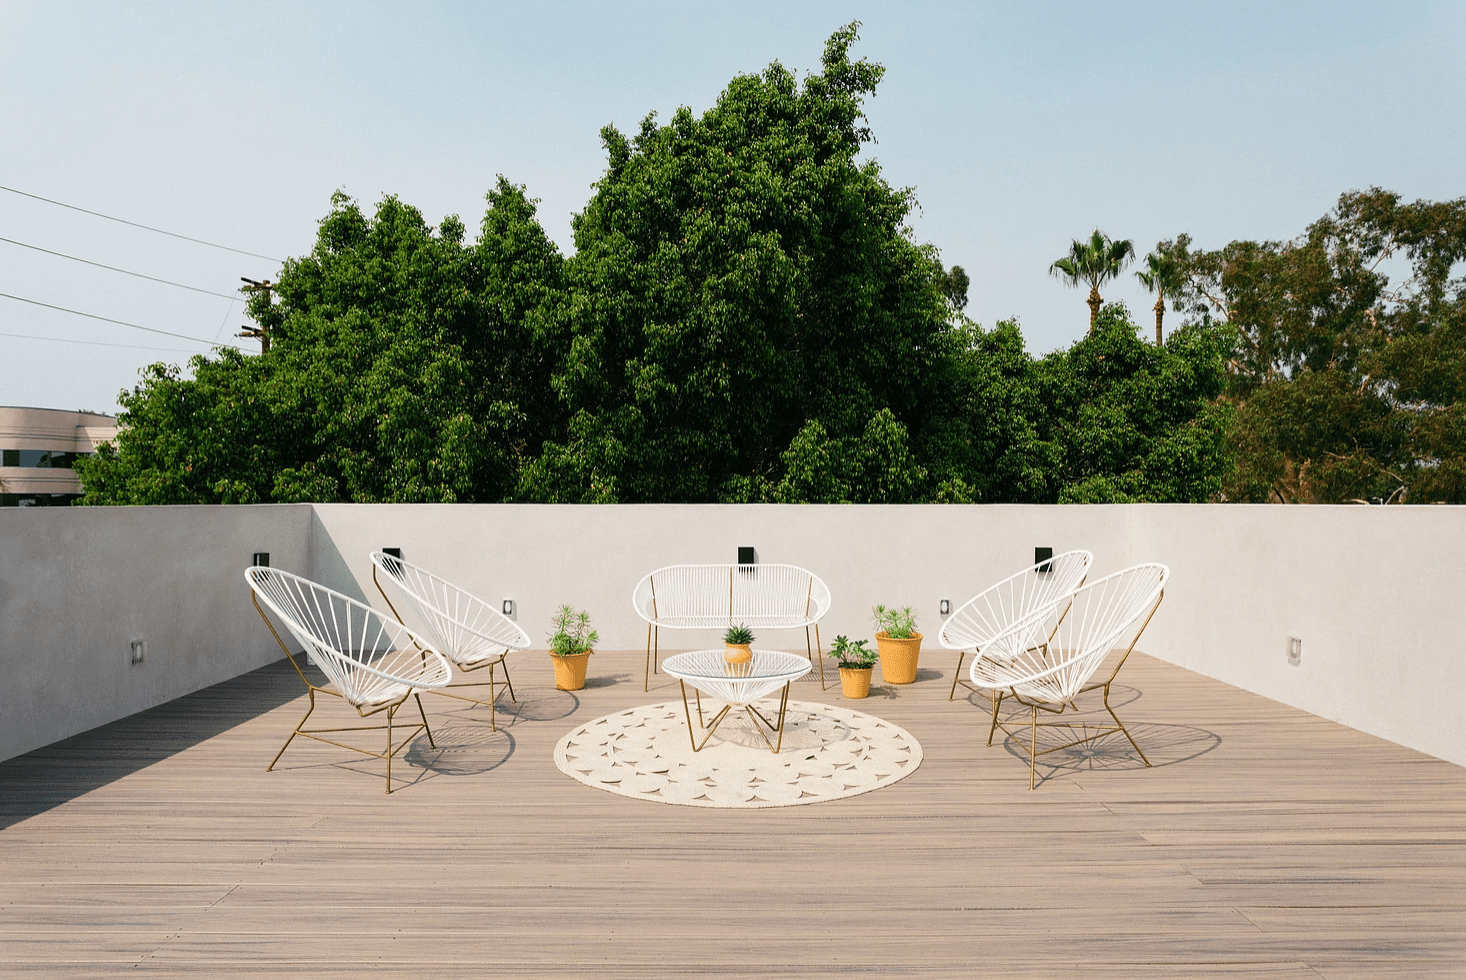 A rooftop deck decorated with matching modern furniture